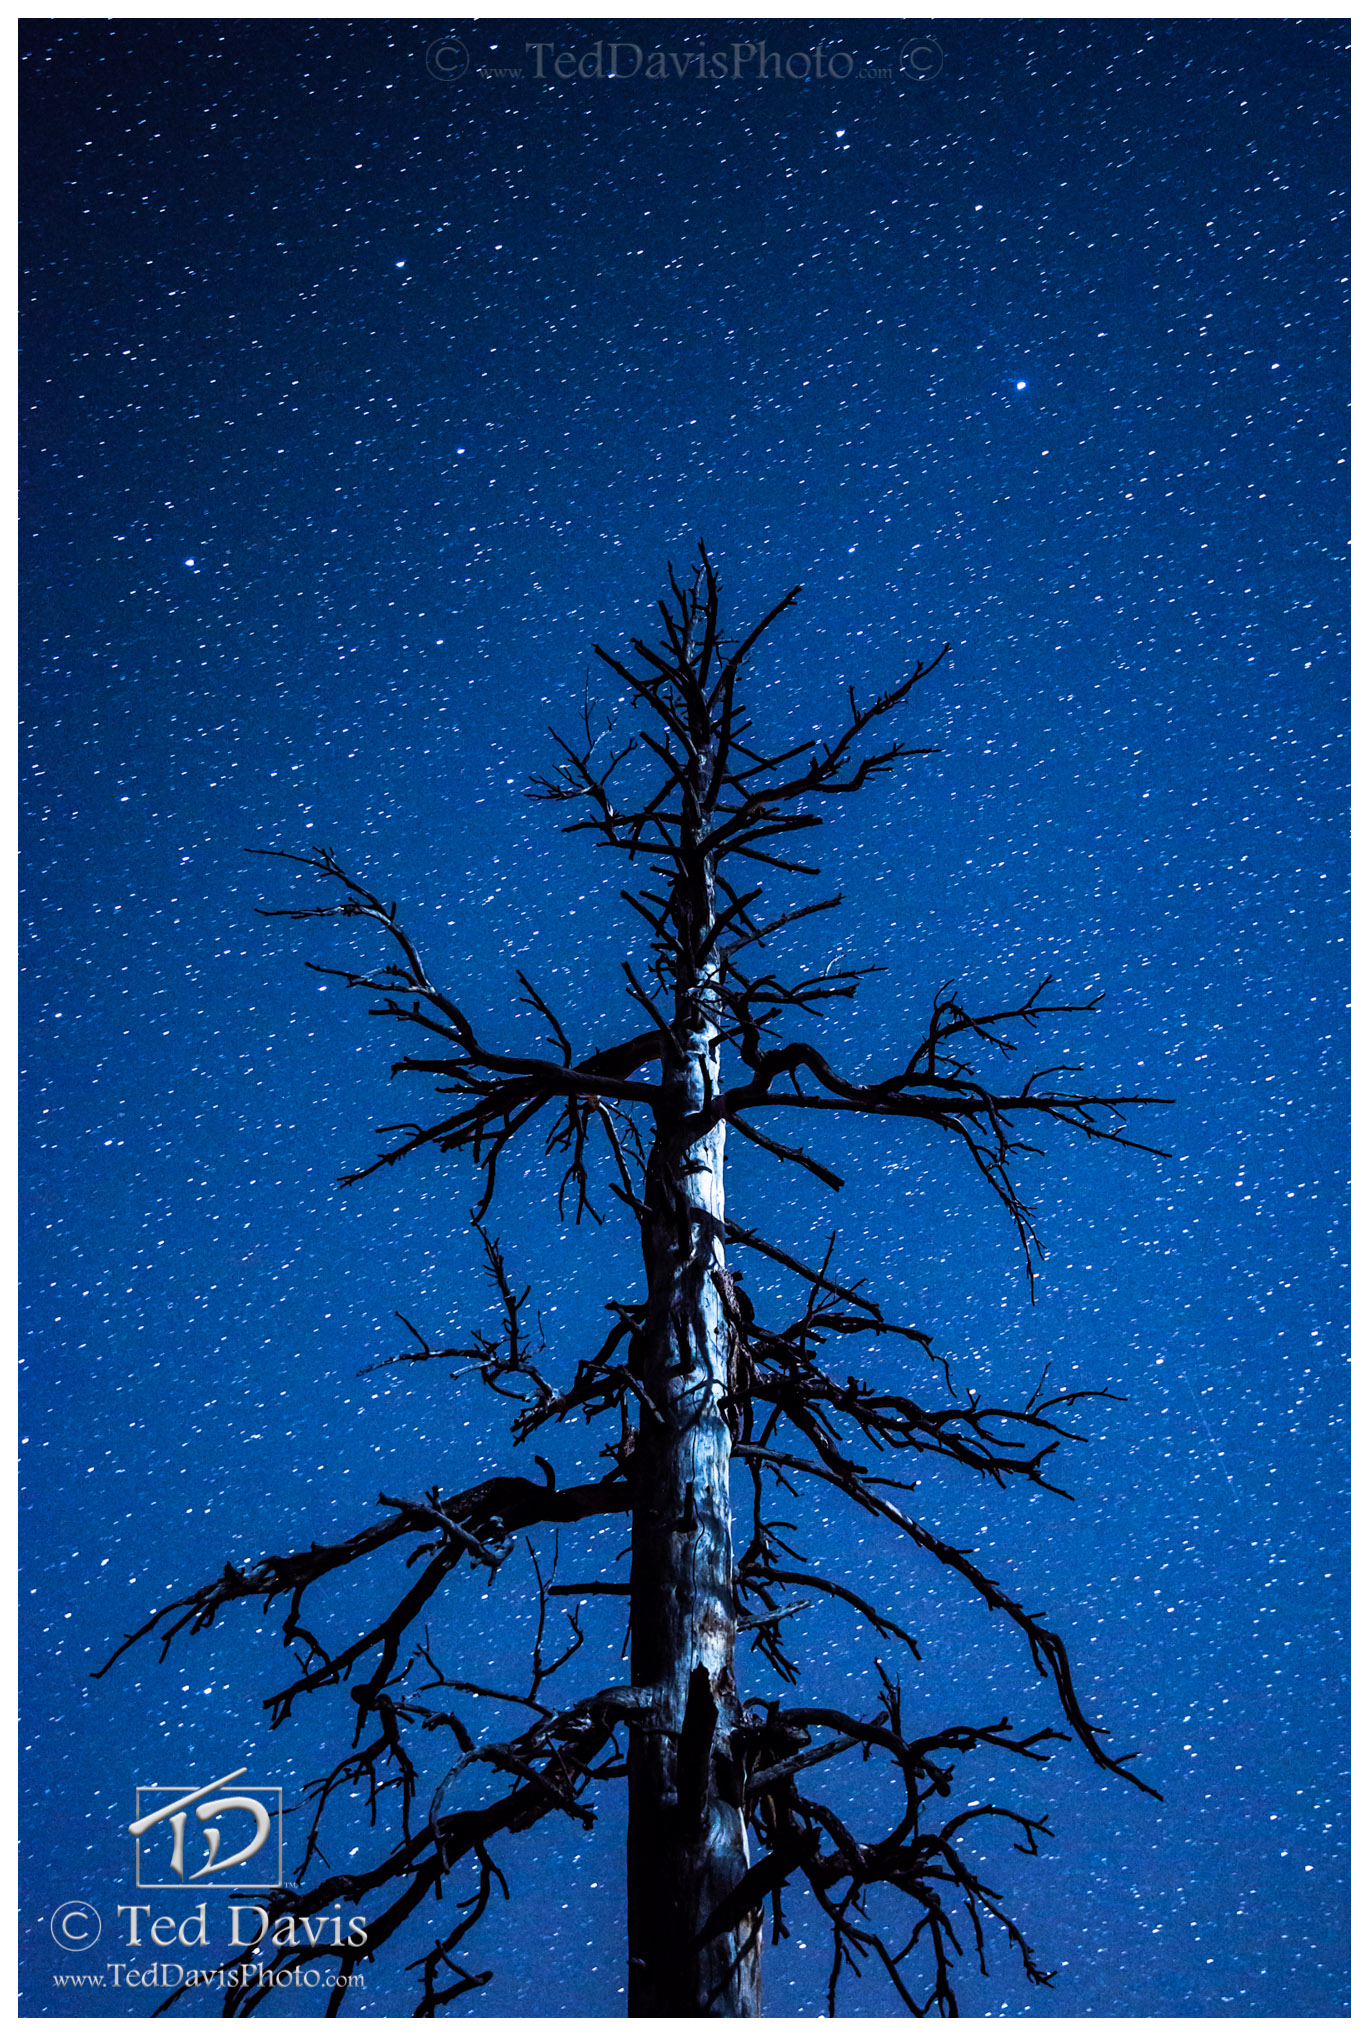 Limited Edition of 200 A singular tree amidst a million and more stars. Evening Sentinel was my first successful attempt of astrophotography...